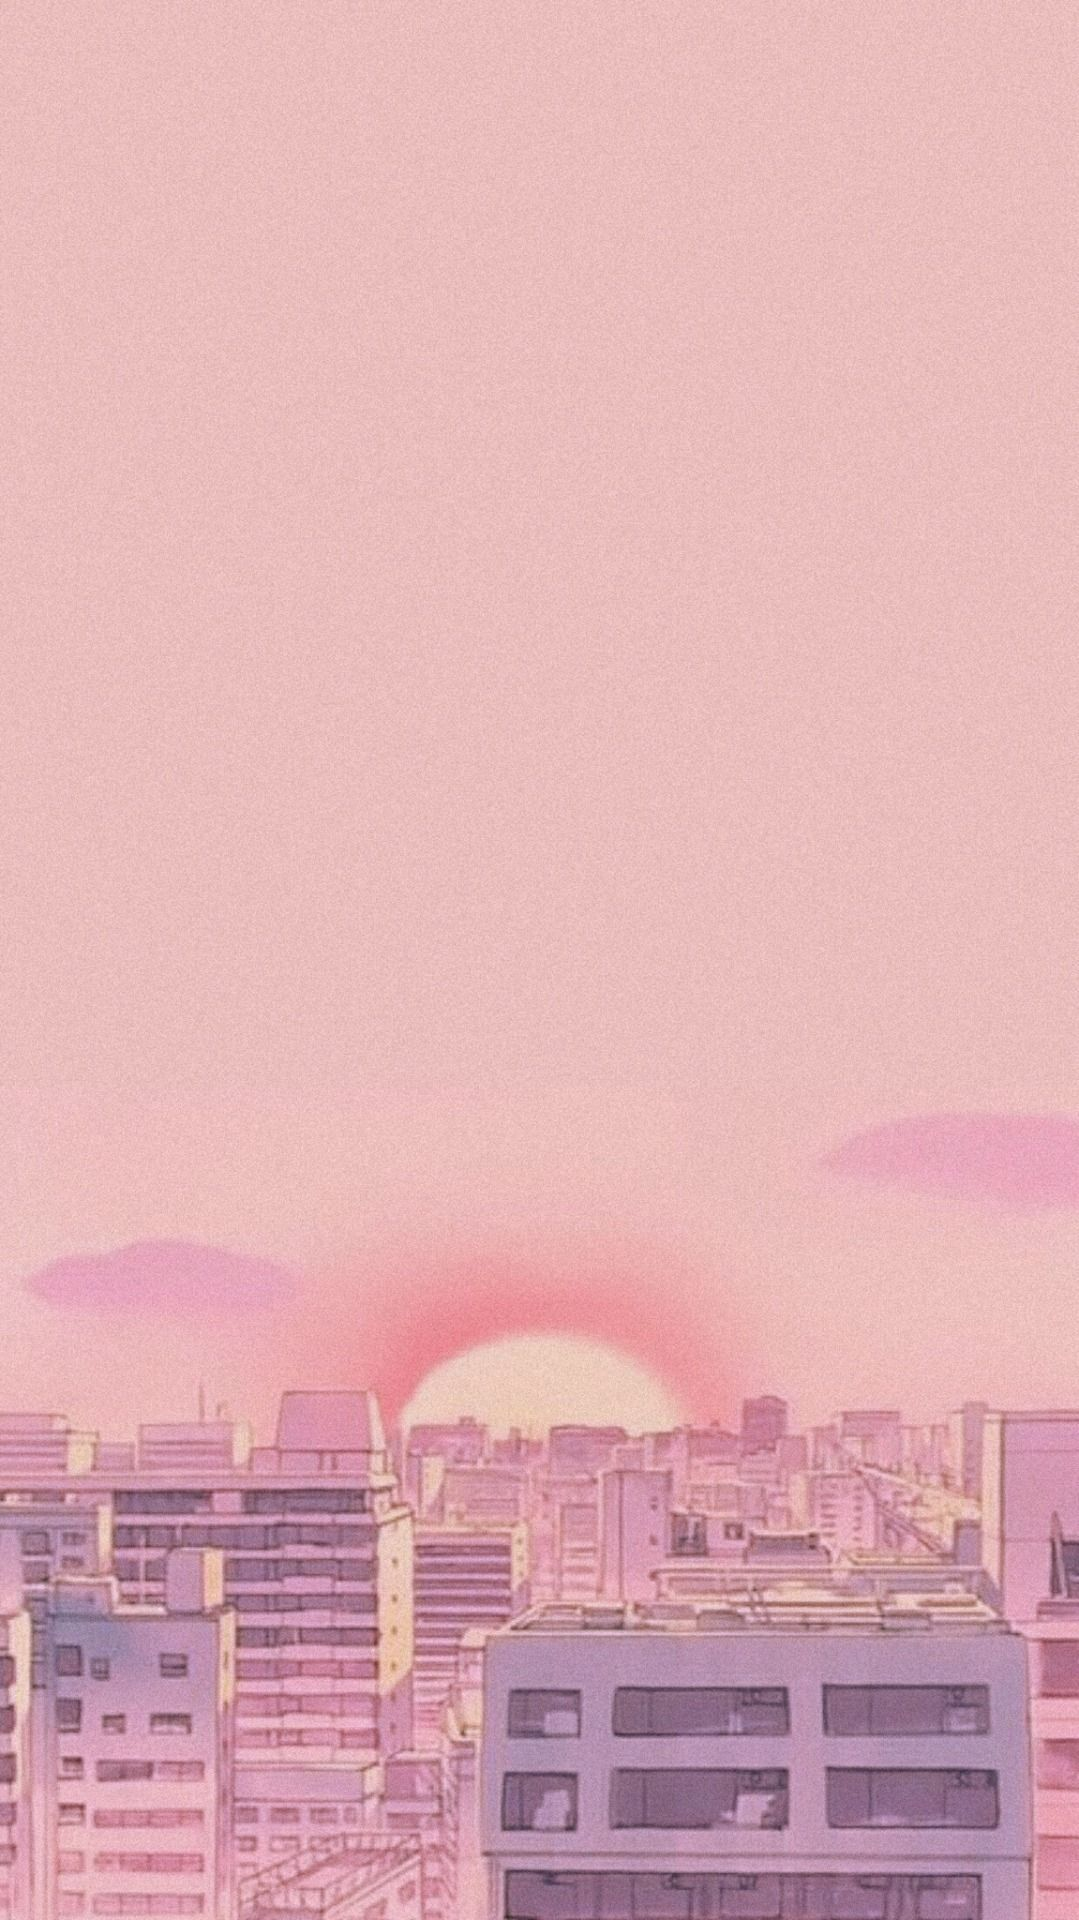 90s Anime In 2020 Anime Wallpaper Iphone Aesthetic Wallpapers Anime Scenery Wallpaper